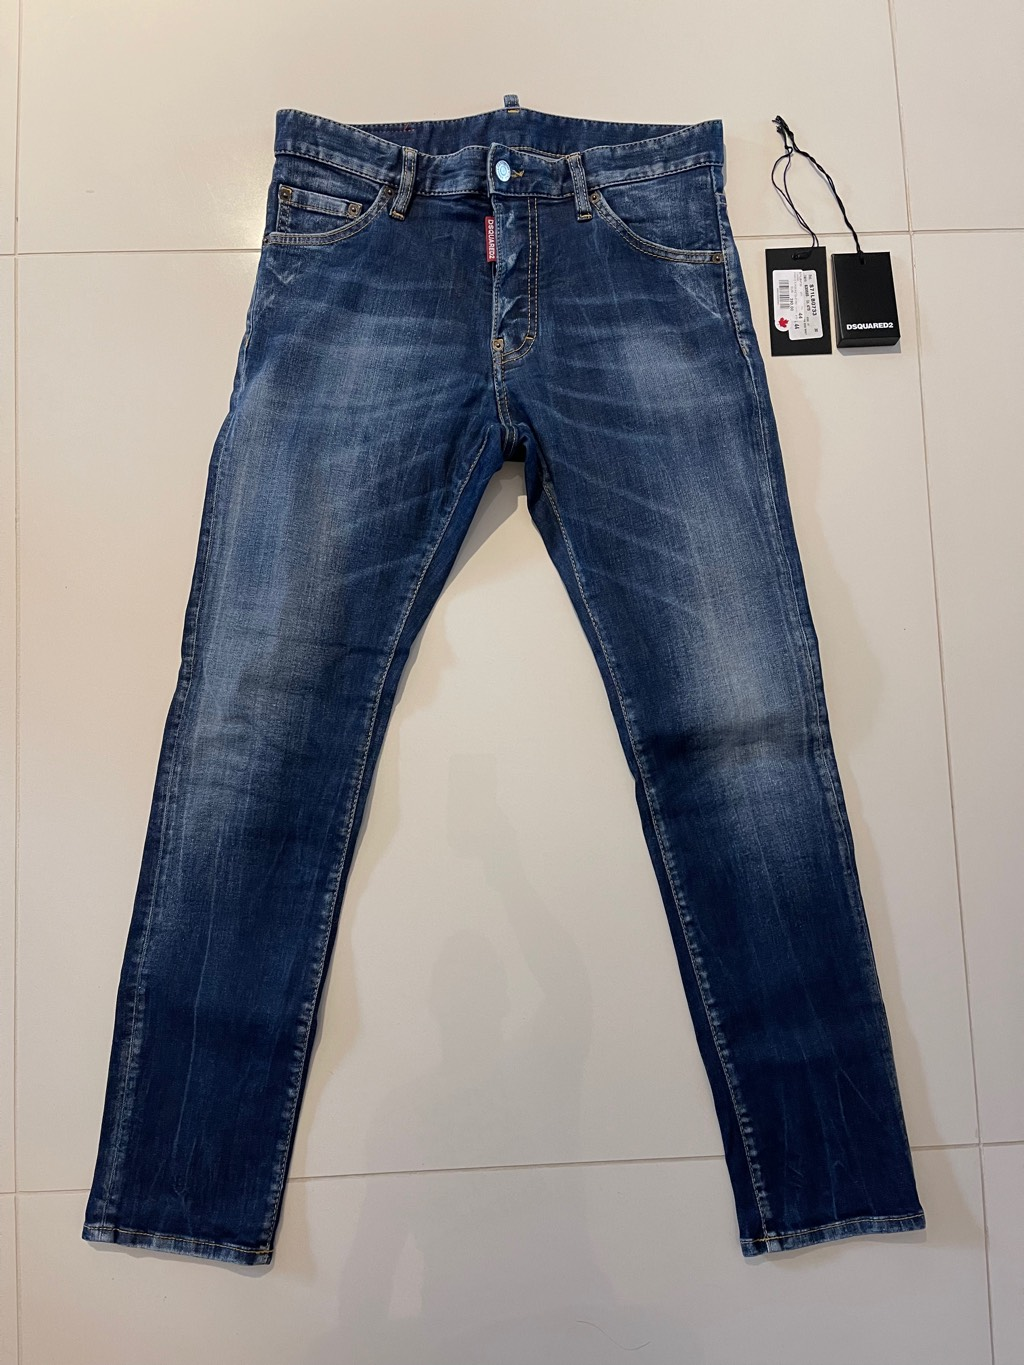 DSQUARED2 Cool Guy jeans, sz.44Dsquared20